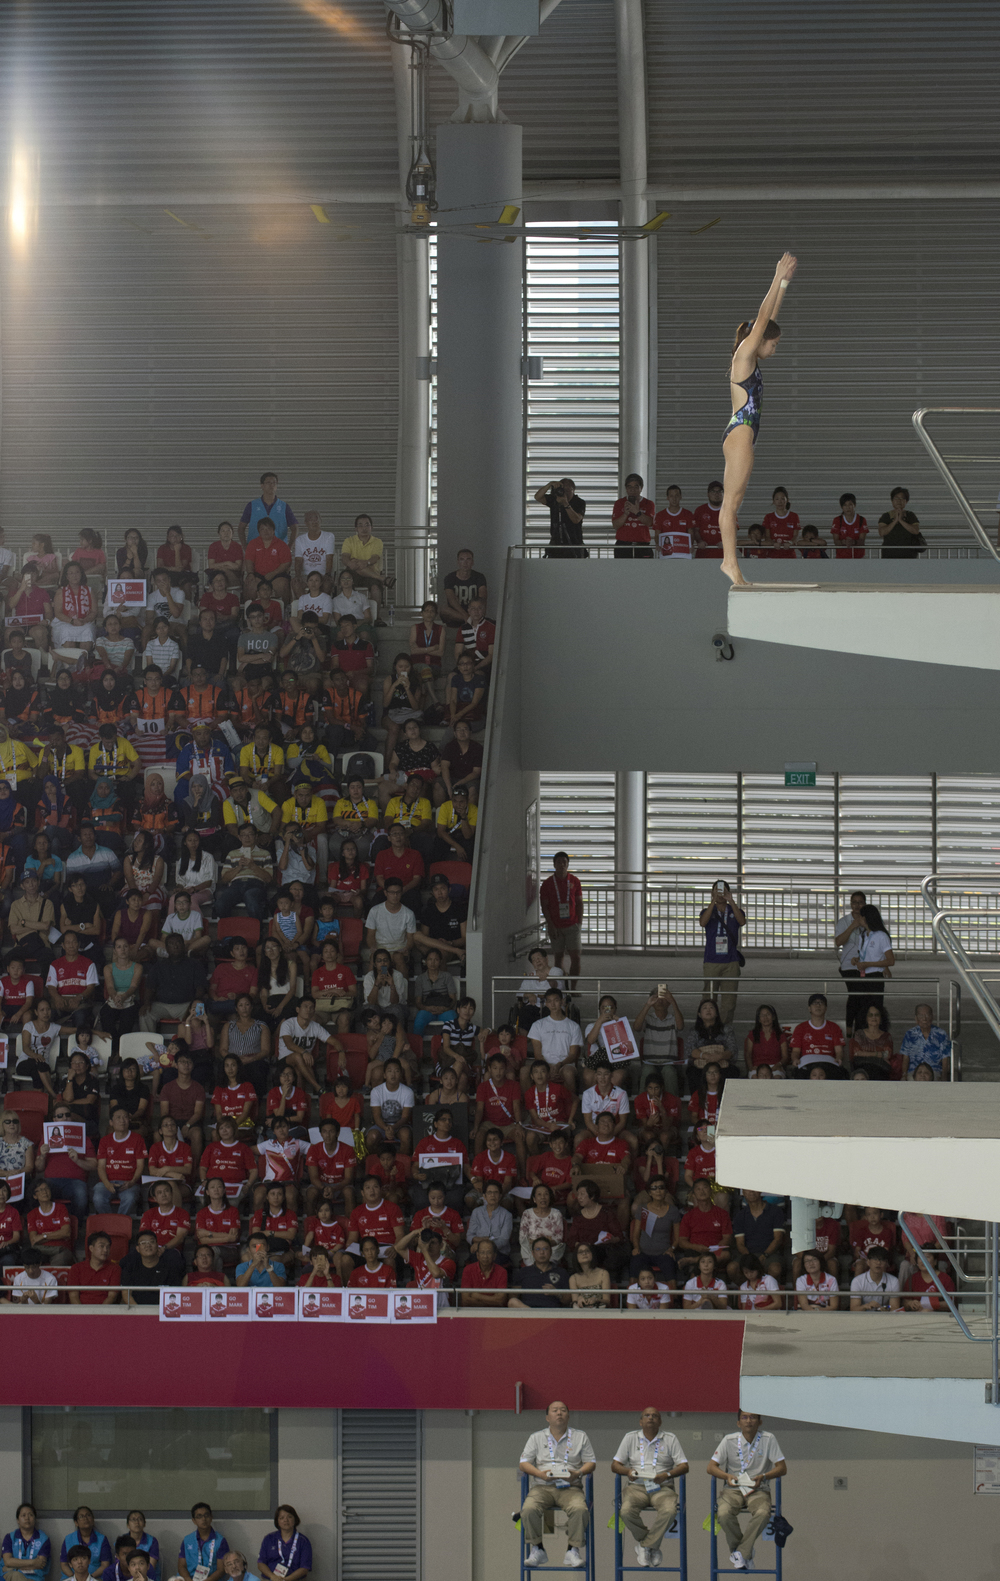 A diver prepares to take the plunge during the 10m diving finals of the SEA Games at the OCBC Aquatic Centre.